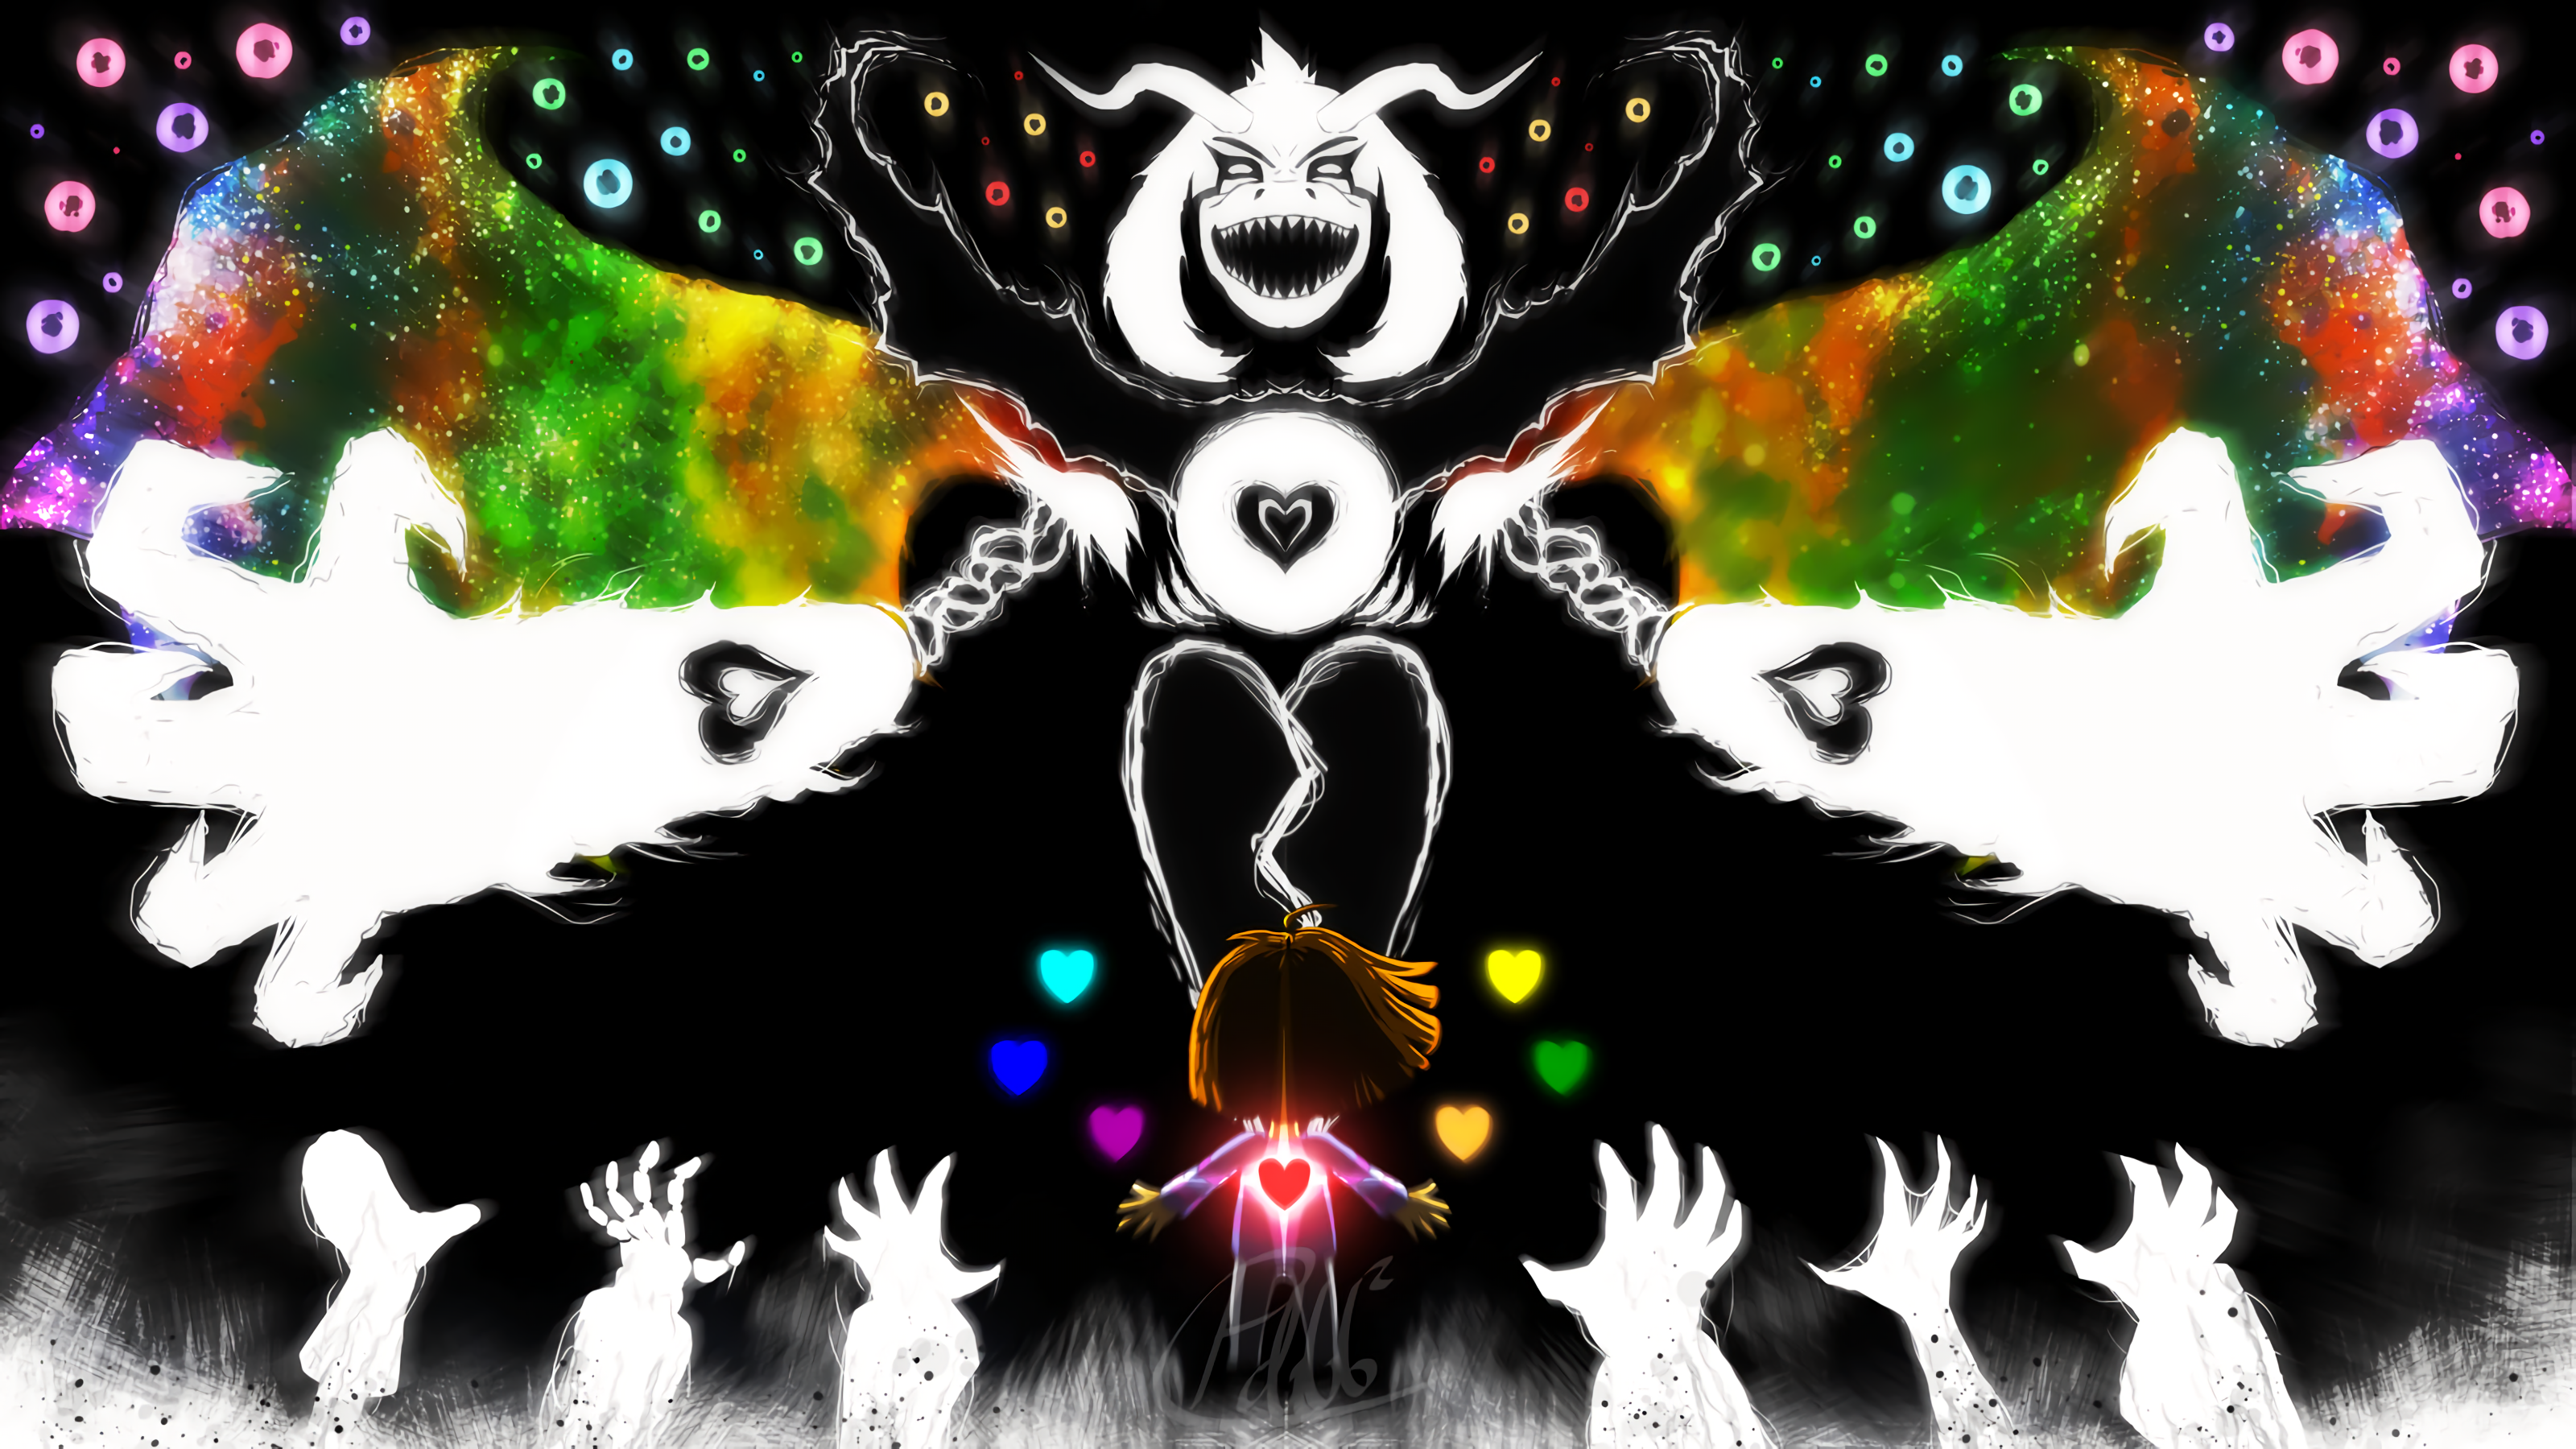 3200x1800 - Undertale Wallpaper 1920x1080 13